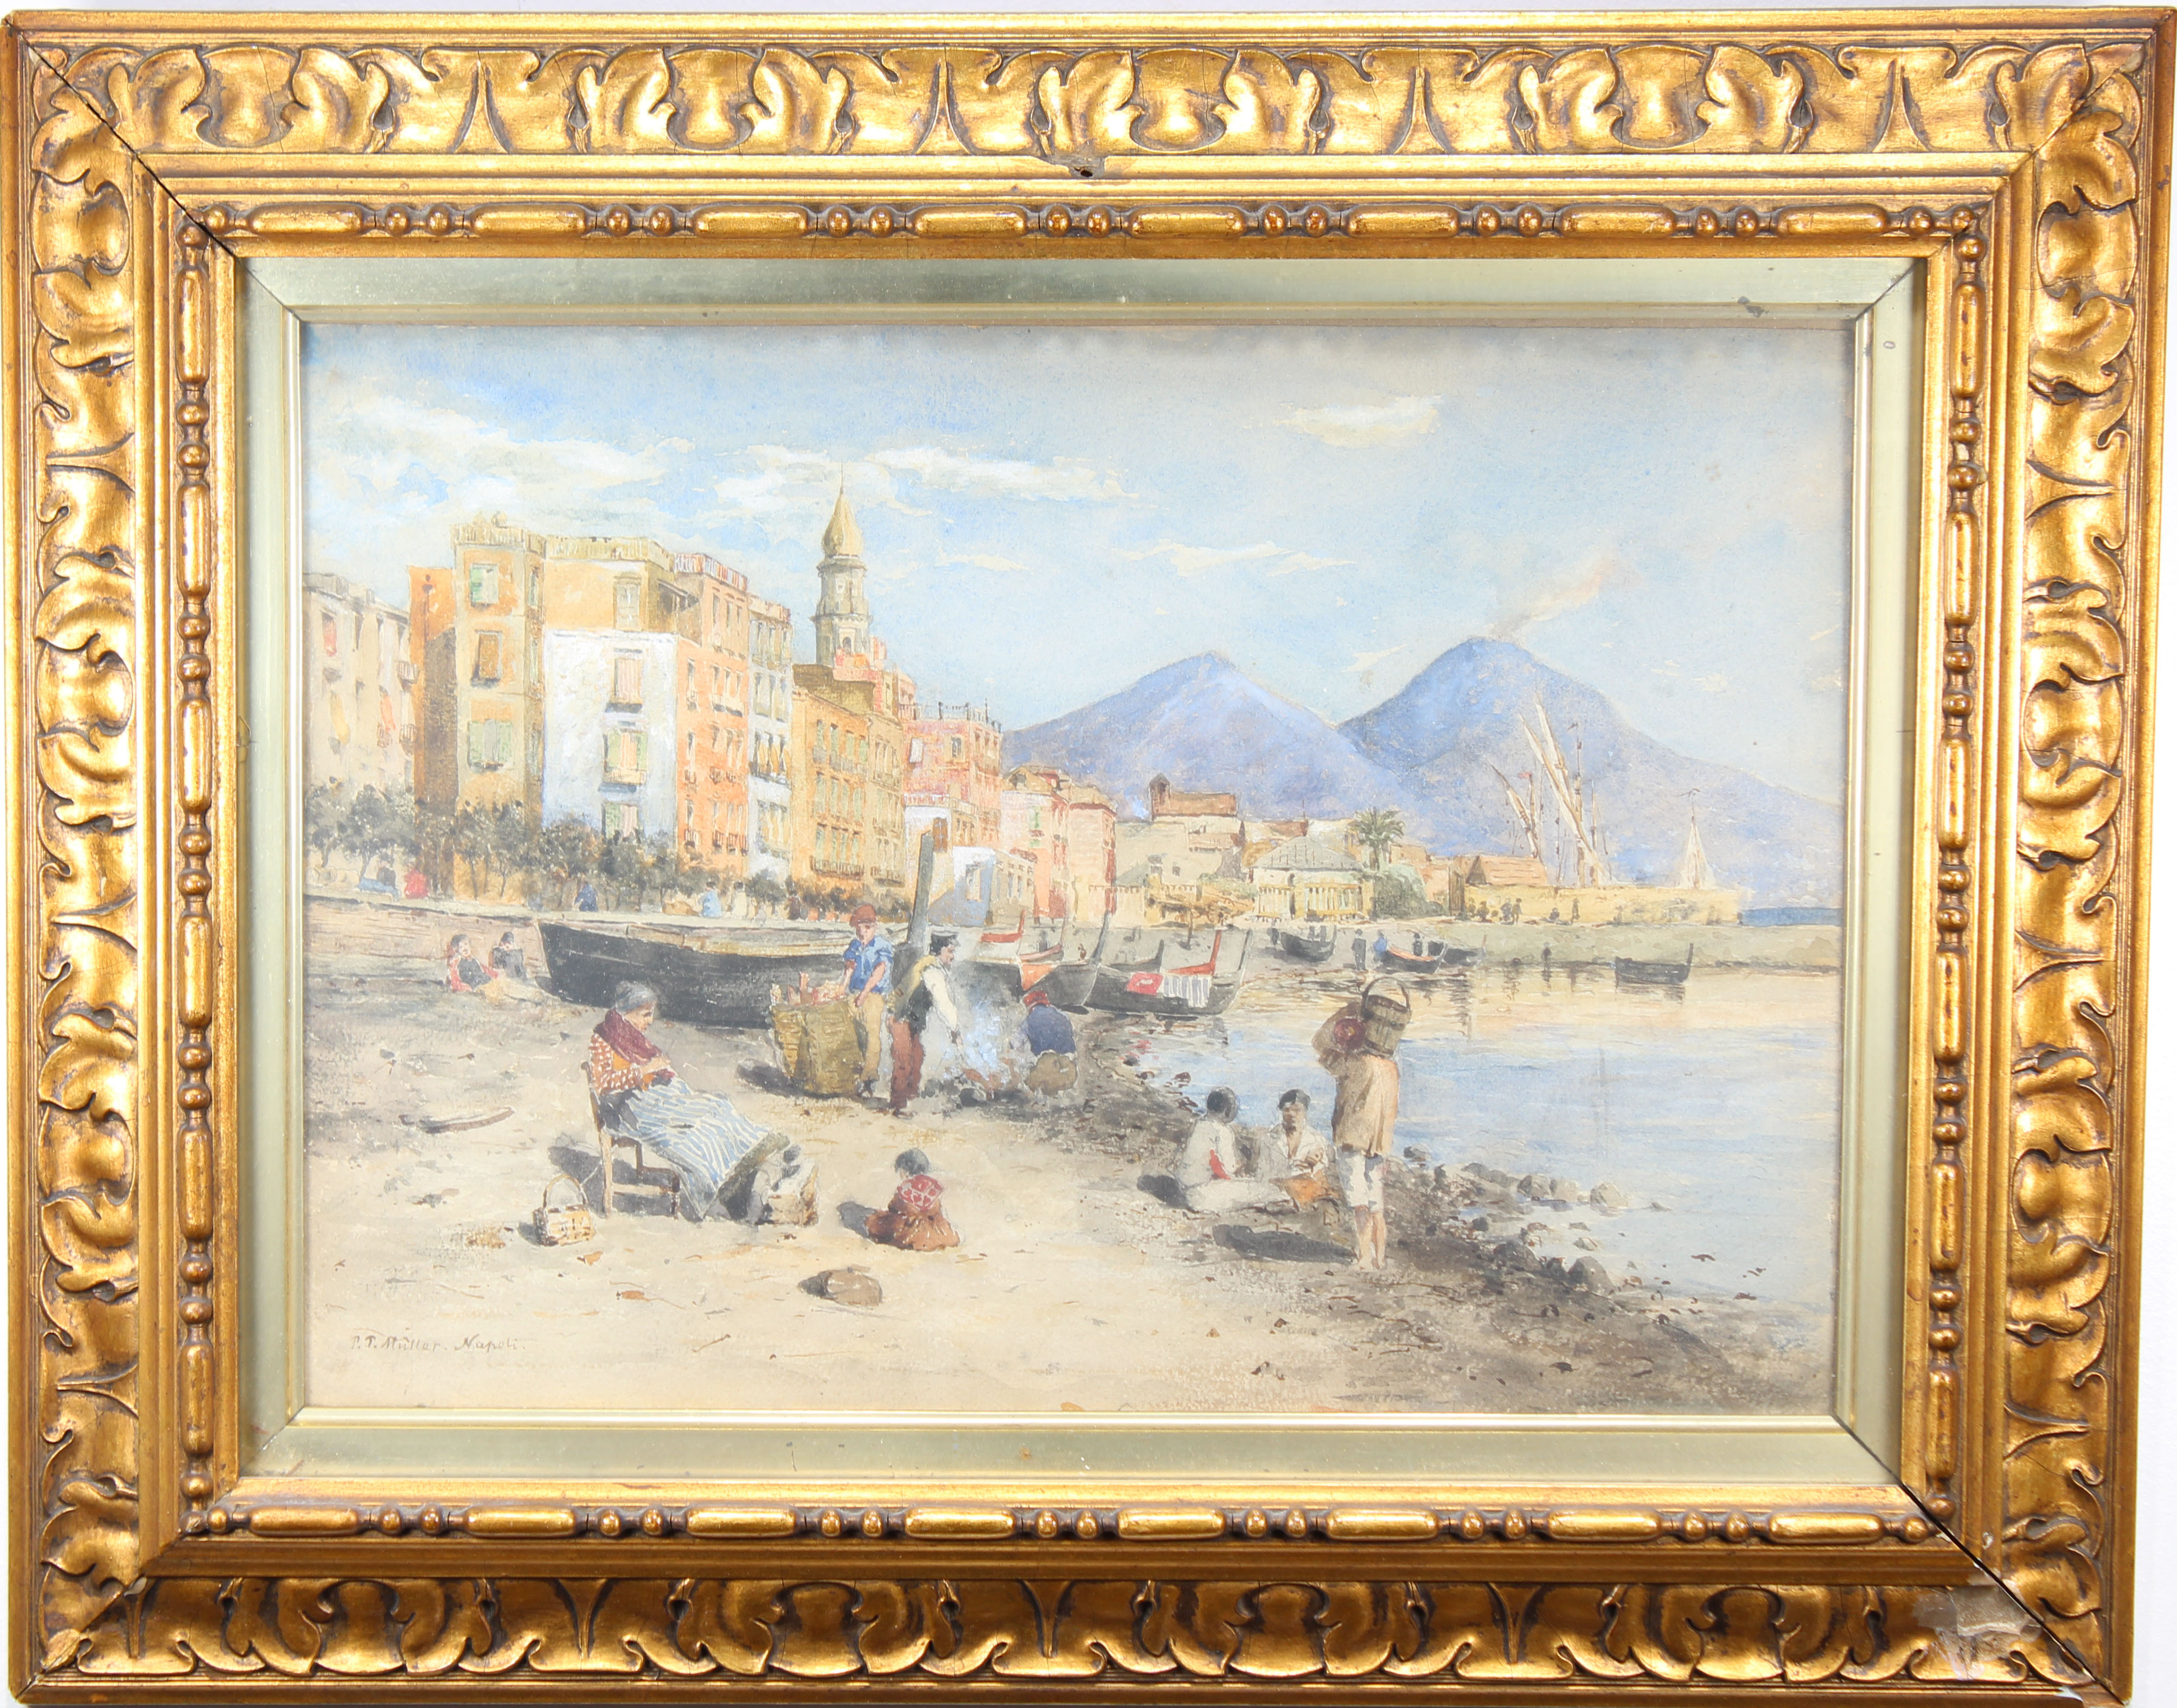 Lot 213 - P Muller, Signed Watercolor of Naples Italy